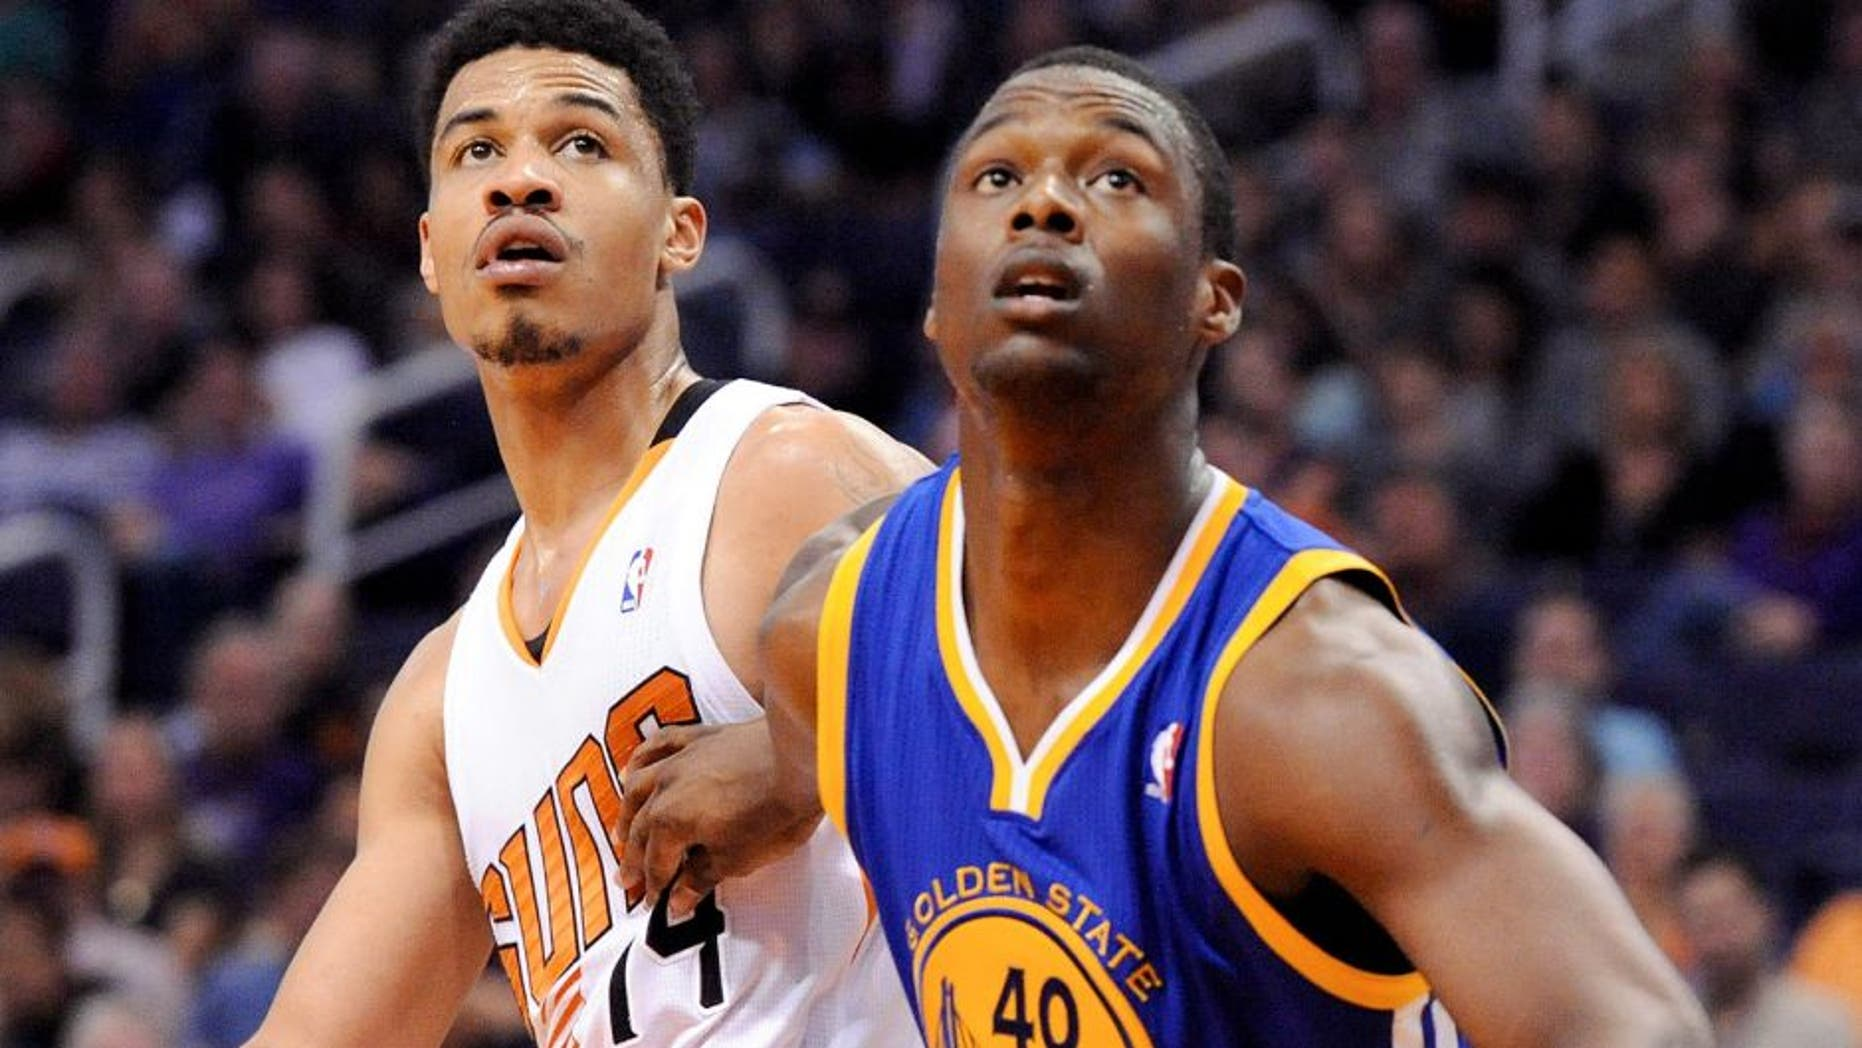 Feb 8, 2014; Phoenix, AZ, USA; Phoenix Suns guard Gerald Green (14) and Golden State Warriors forward Harrison Barnes (40) battle for positioning during the third quarter at US Airways Center. The Suns won 122-109. Mandatory Credit: Casey Sapio-USA TODAY Sports